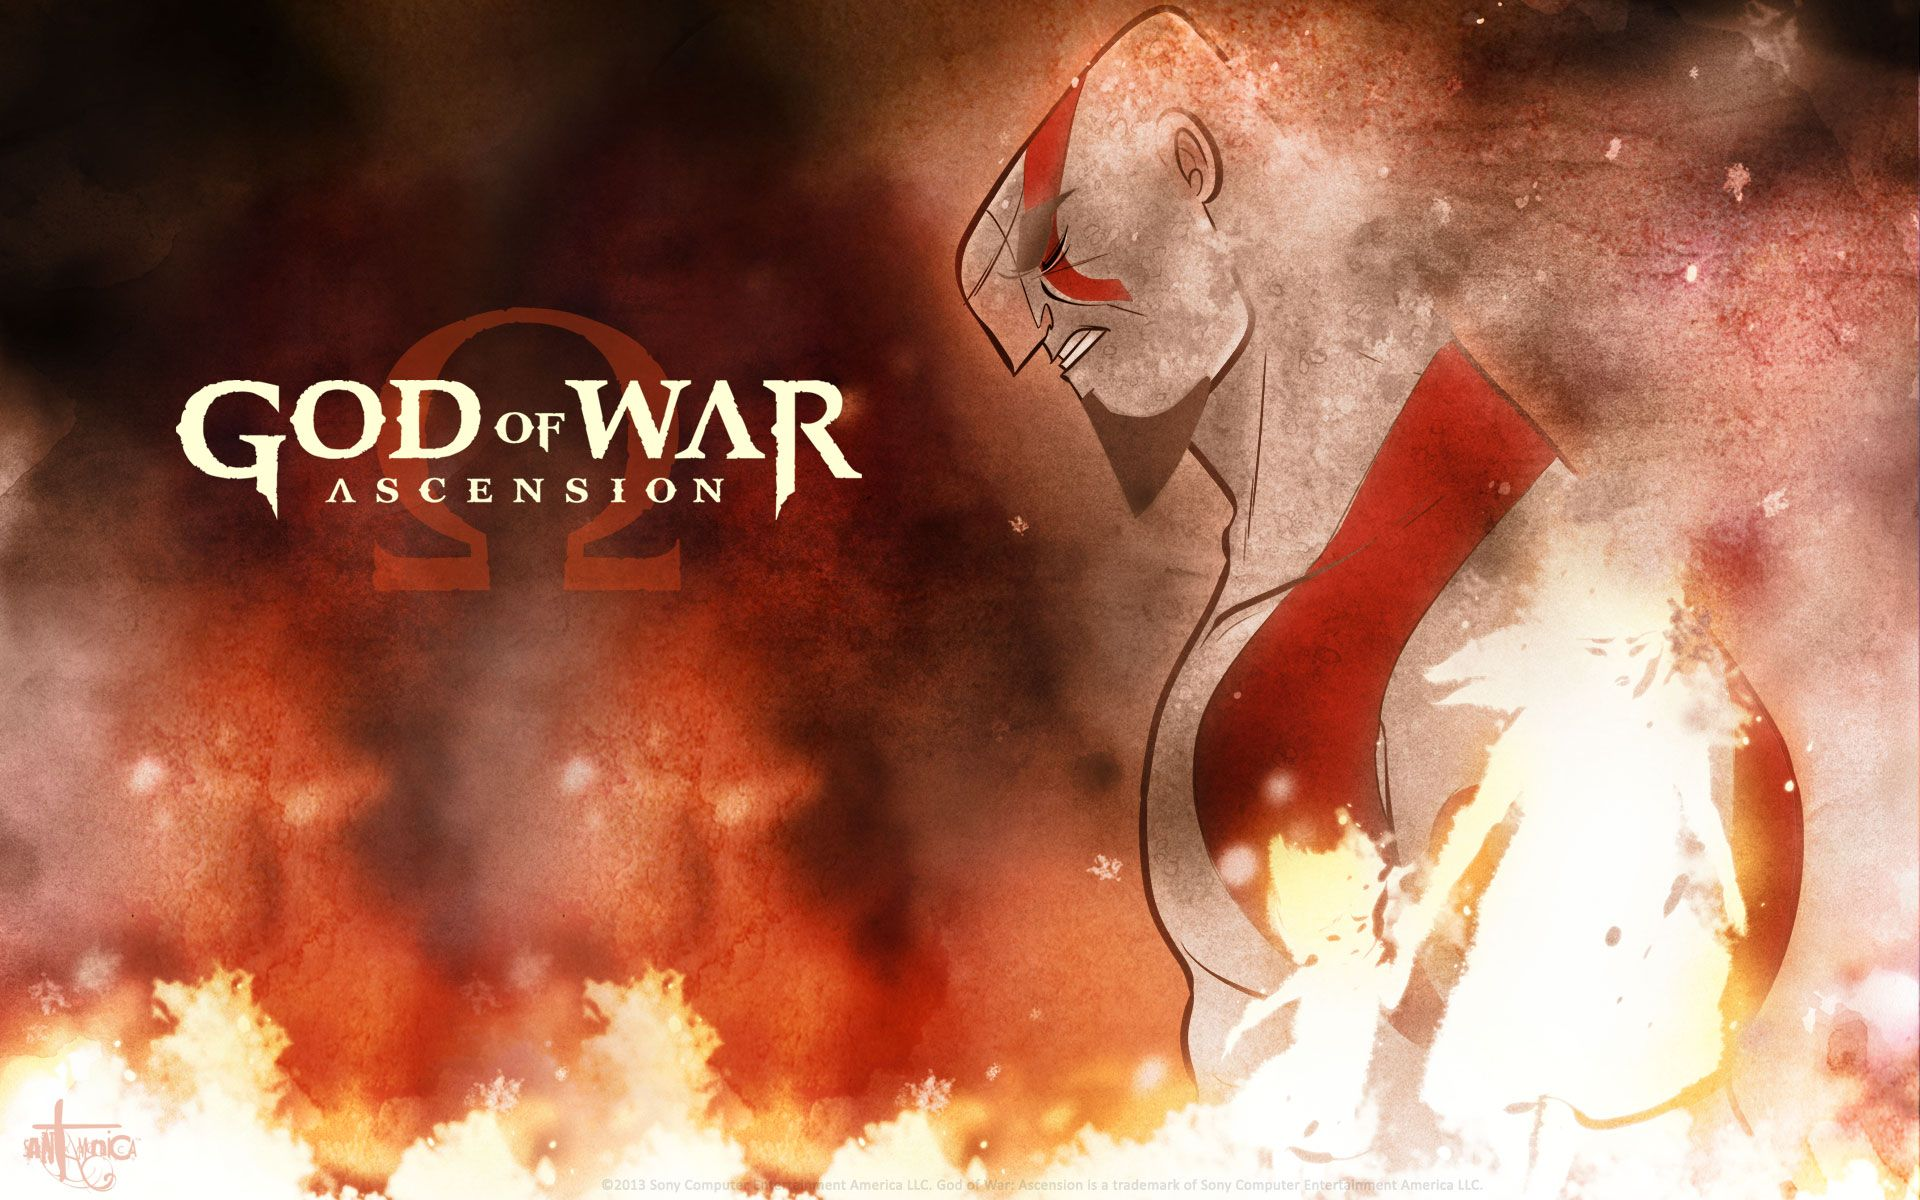 God of war ascension hd wallpapers backgrounds wallpaper god of war ascension hd wallpapers backgrounds wallpaper voltagebd Gallery